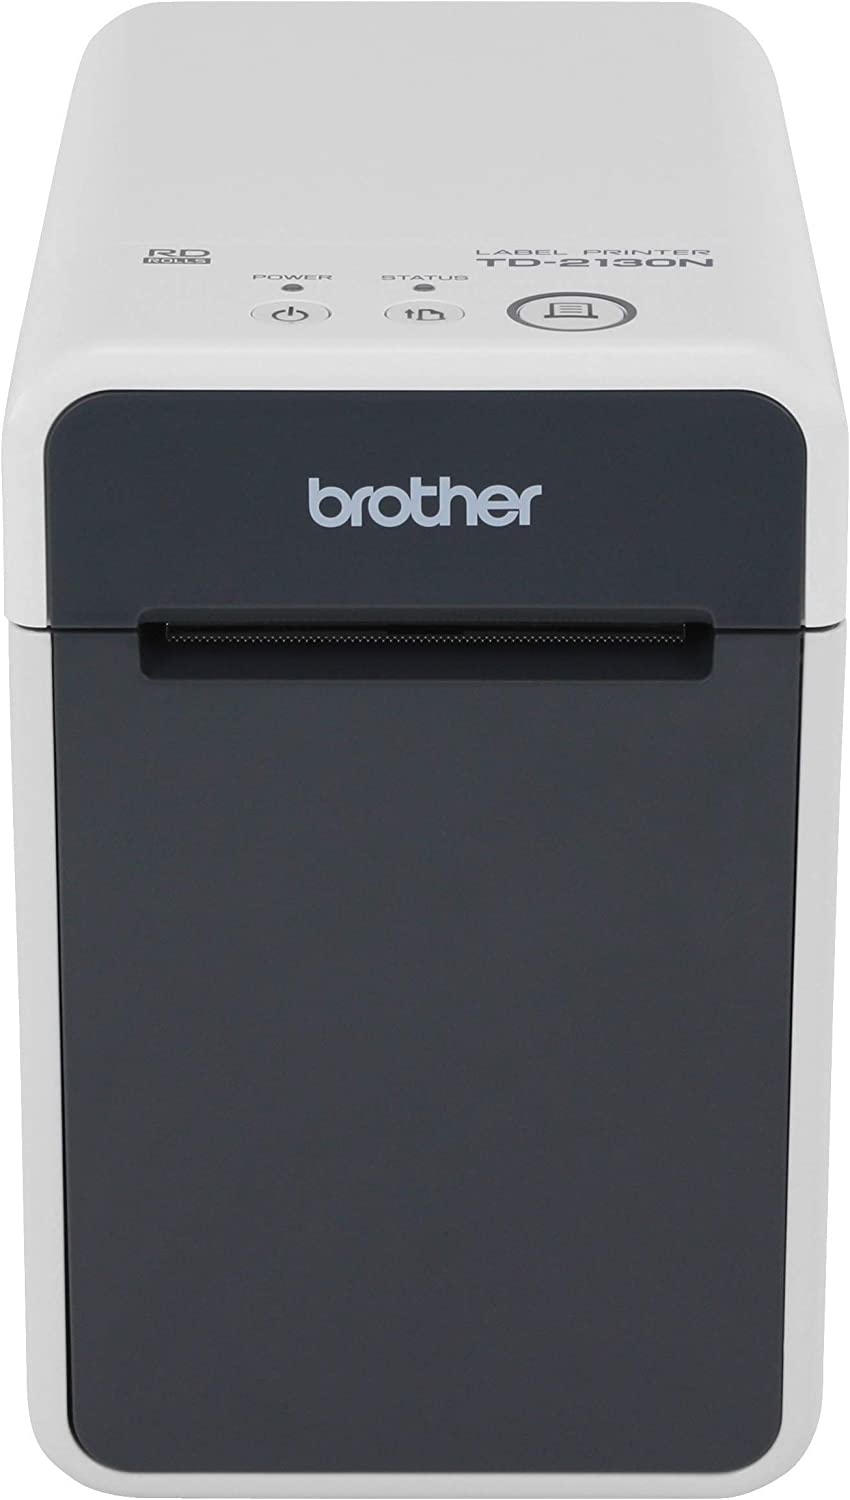 Brother TD2130N 2-inch Desktop Thermal Printer for Labels, Receipts & Tags, 300dpi, 6ips, USB/Serial/LAN, Optional Wi-Fi with AirPrint or Bluetooth